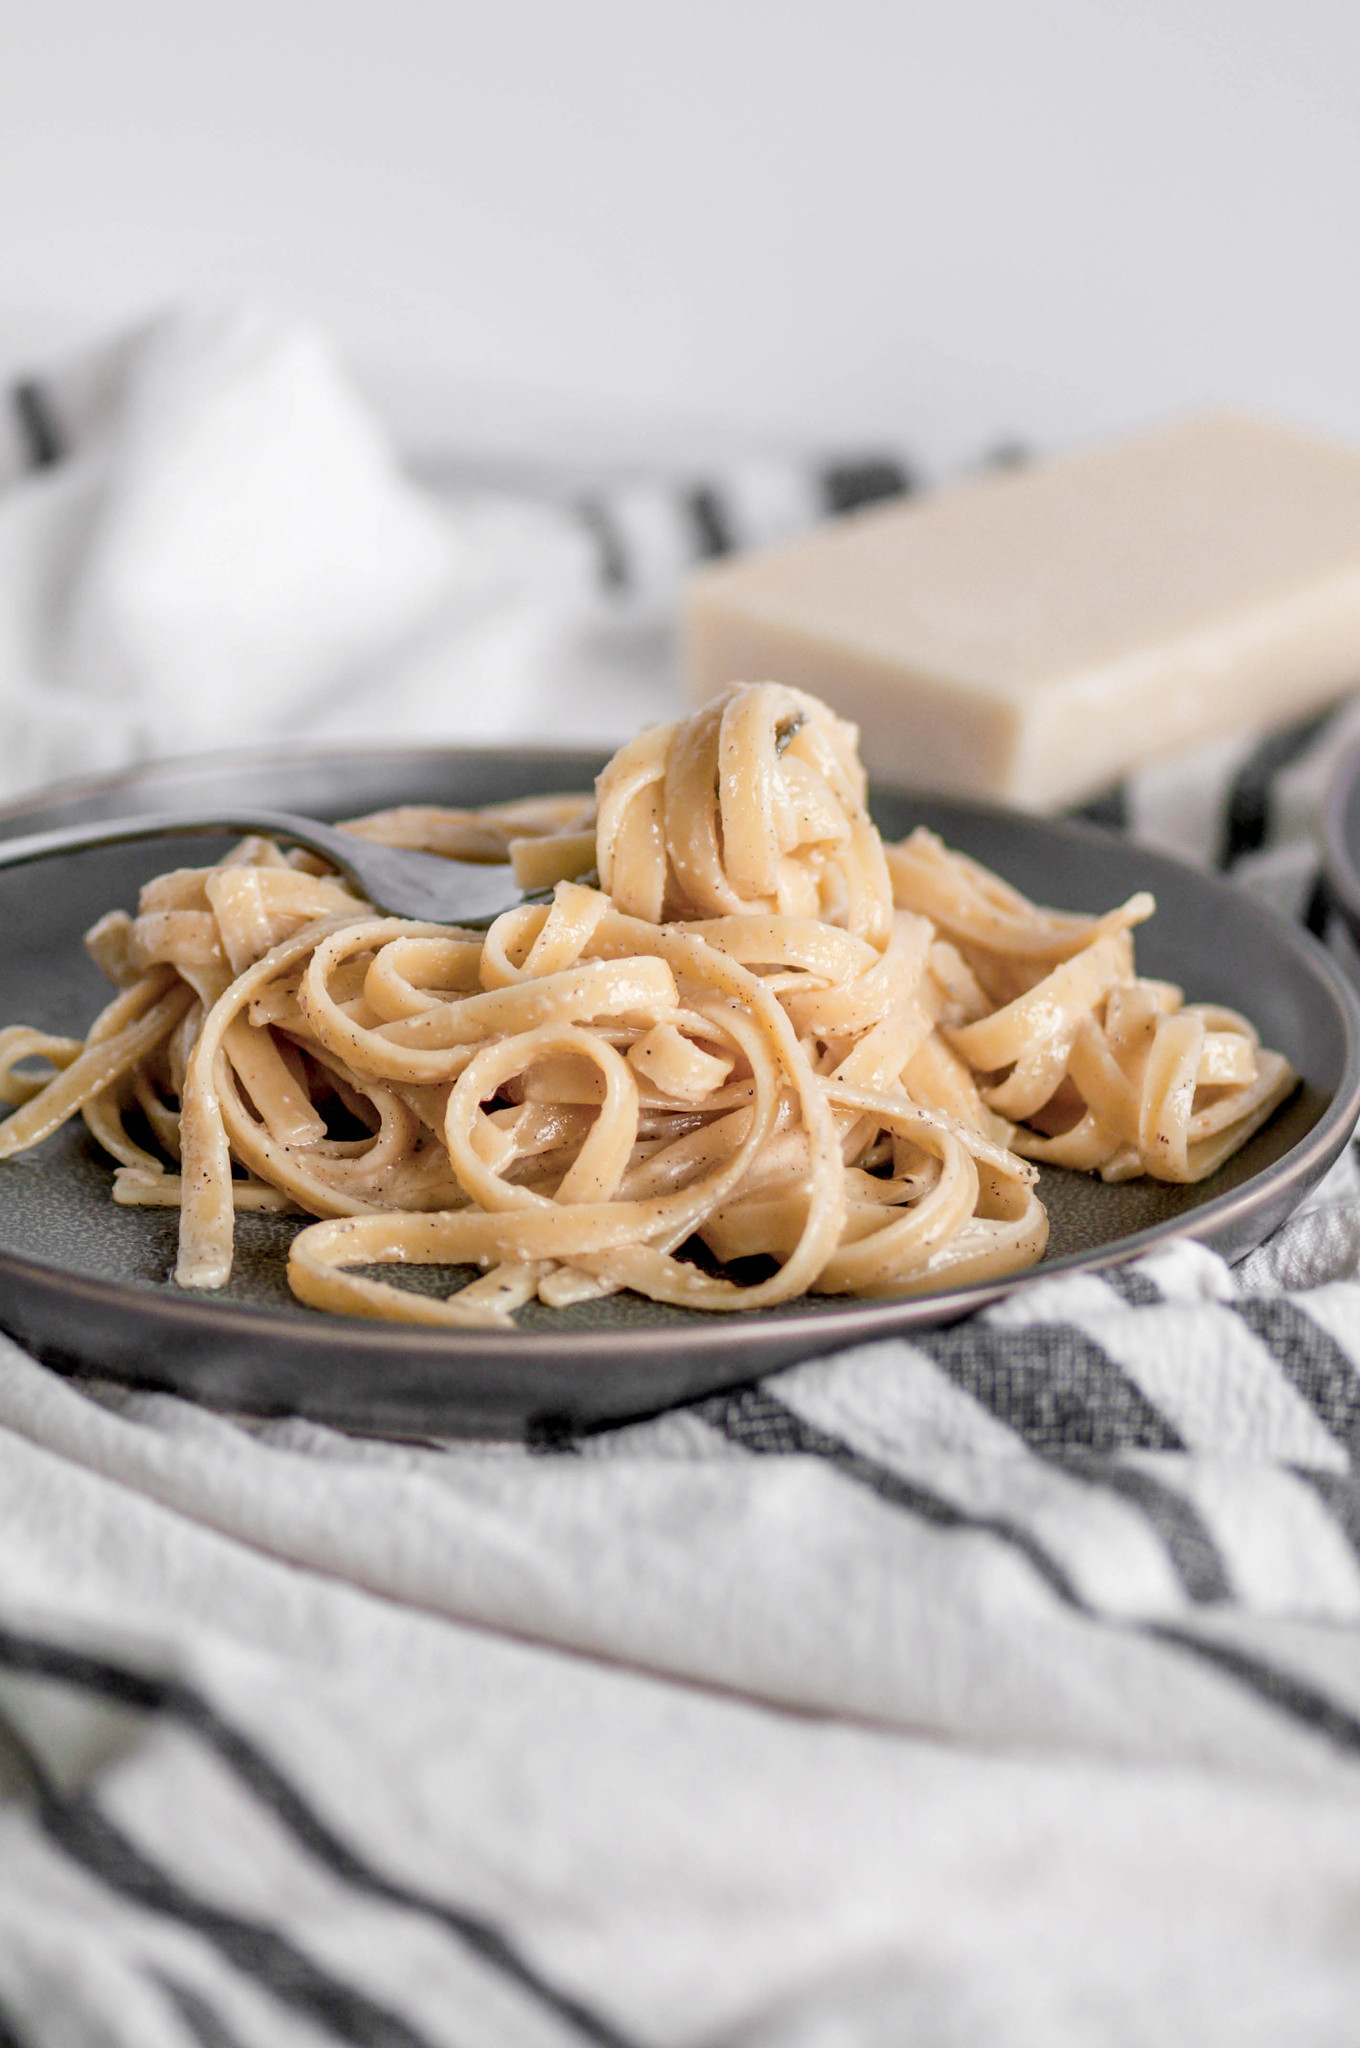 Roasted Garlic Alfredo will quickly become your go to weeknight meal. Garlicky, cheesy, nutty and done in less than 30 minutes.